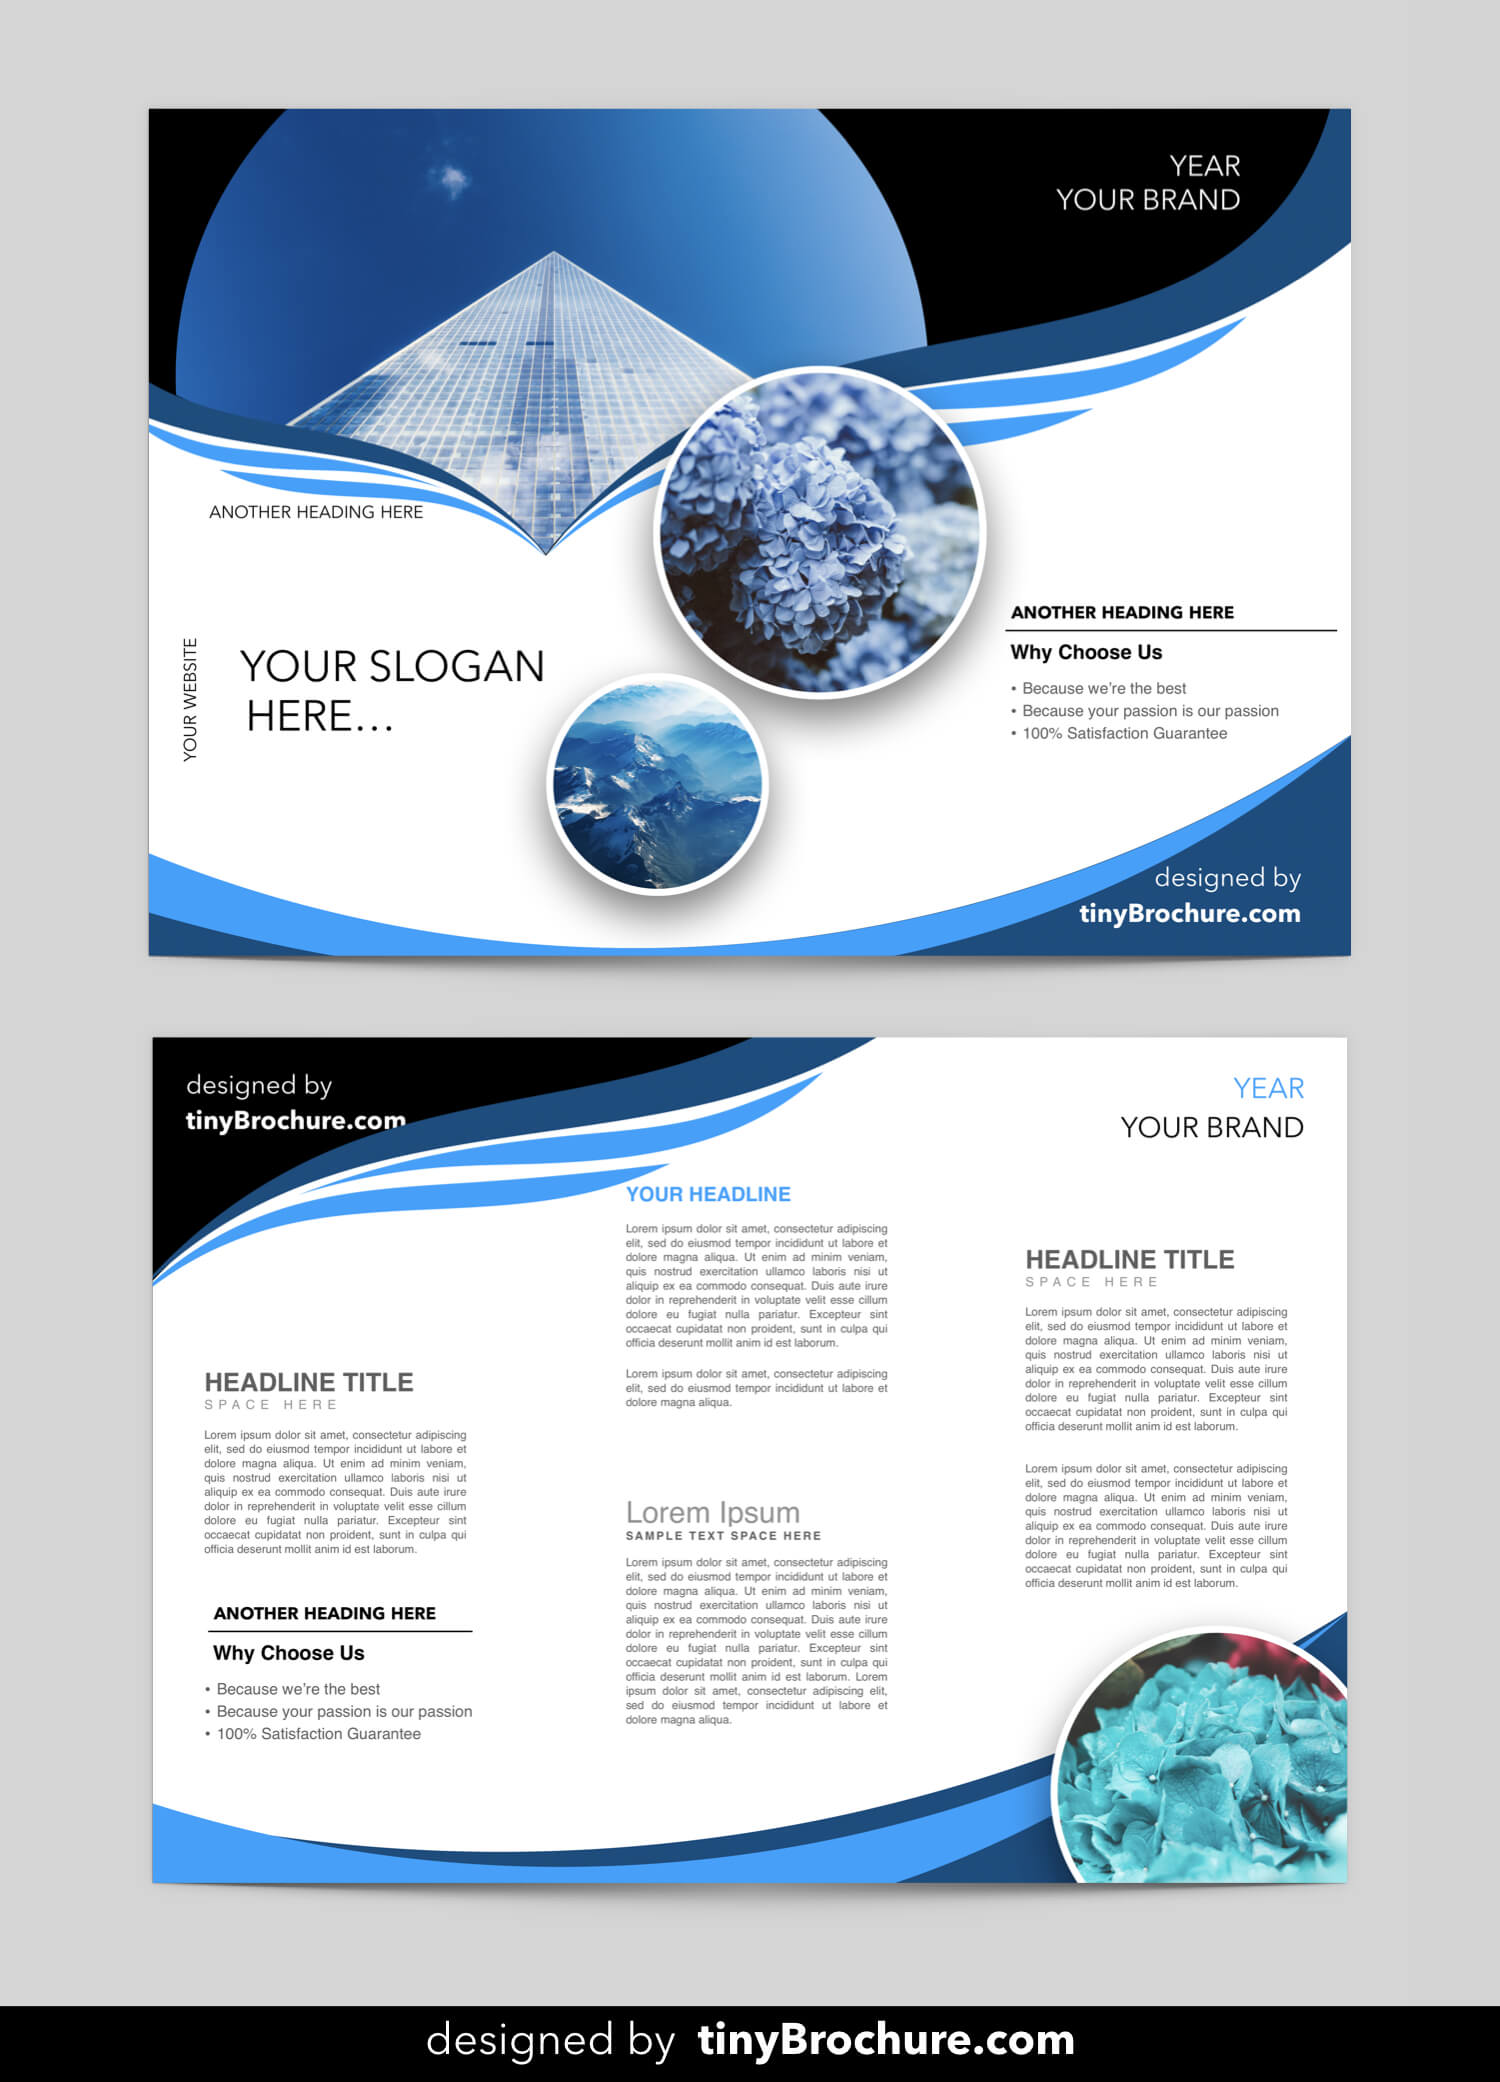 010 Template Ideas Brochure Microsoft Shocking Word Free Tri Regarding Free Brochure Templates For Word 2010